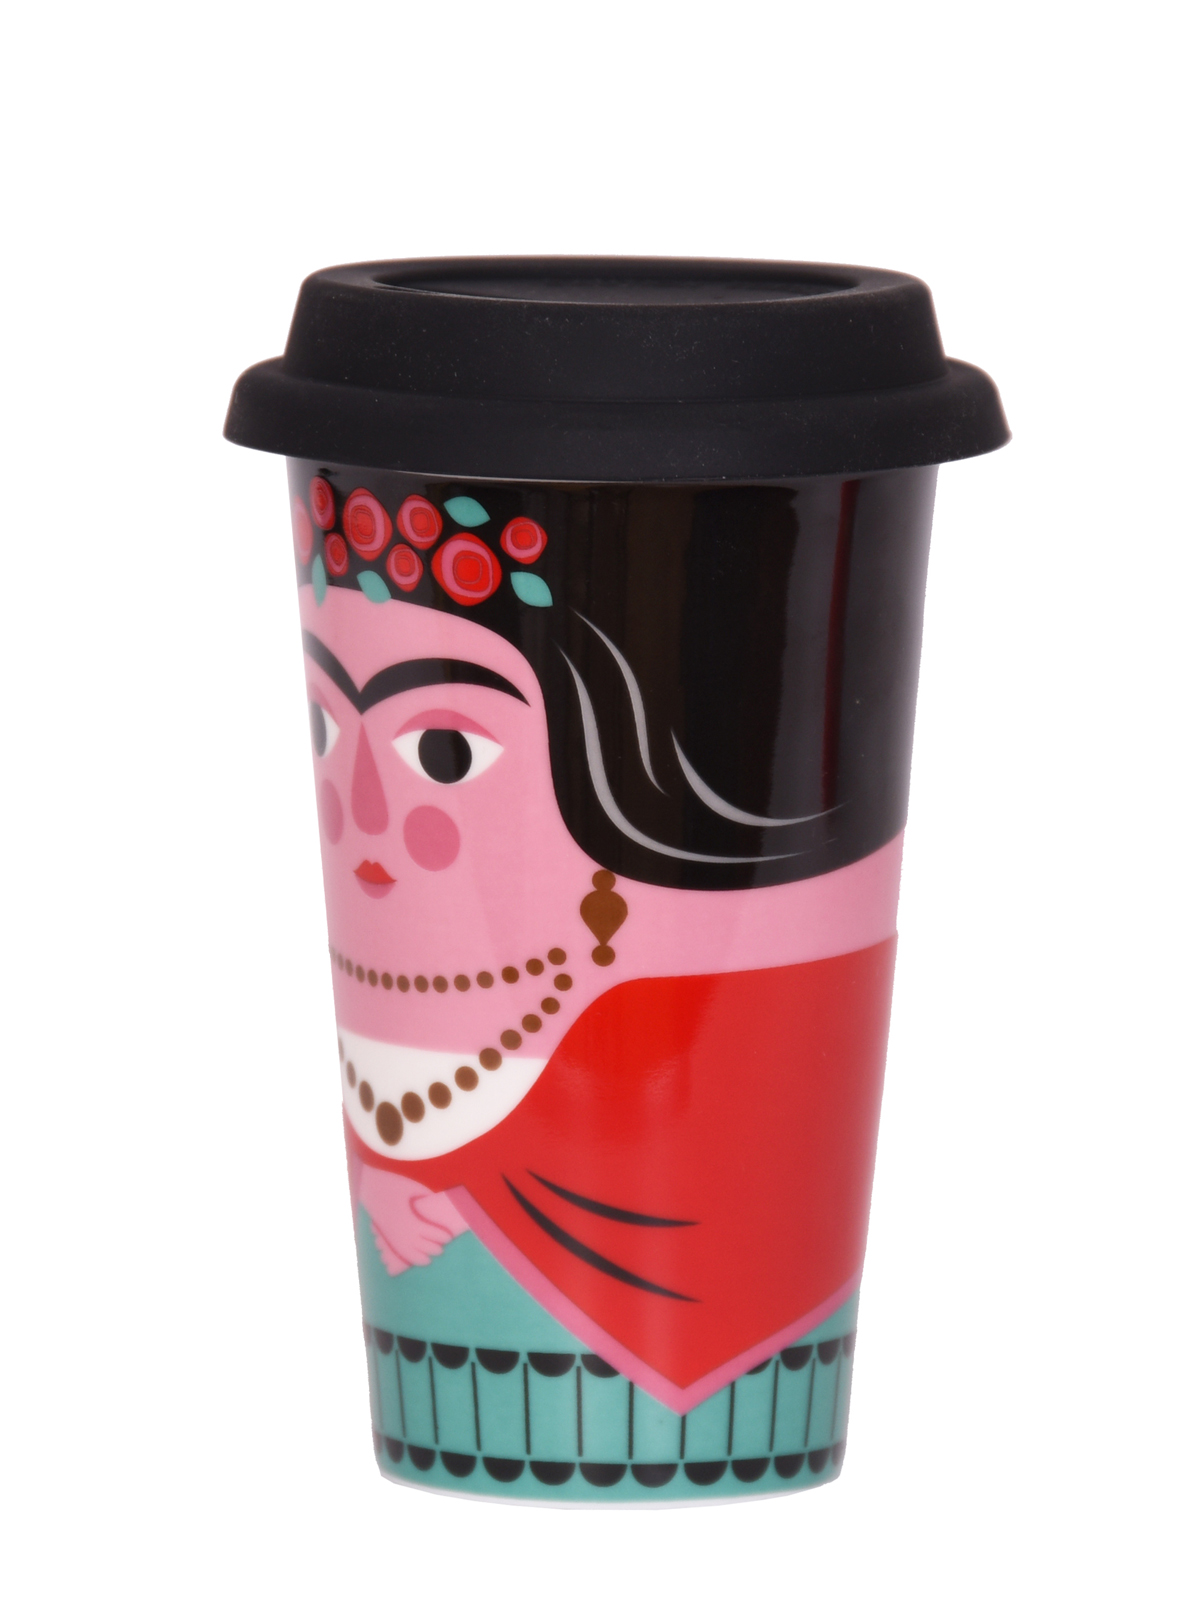 Bl 229 Gungan Webshop Design Amp Crafts Travel Mug With Lid